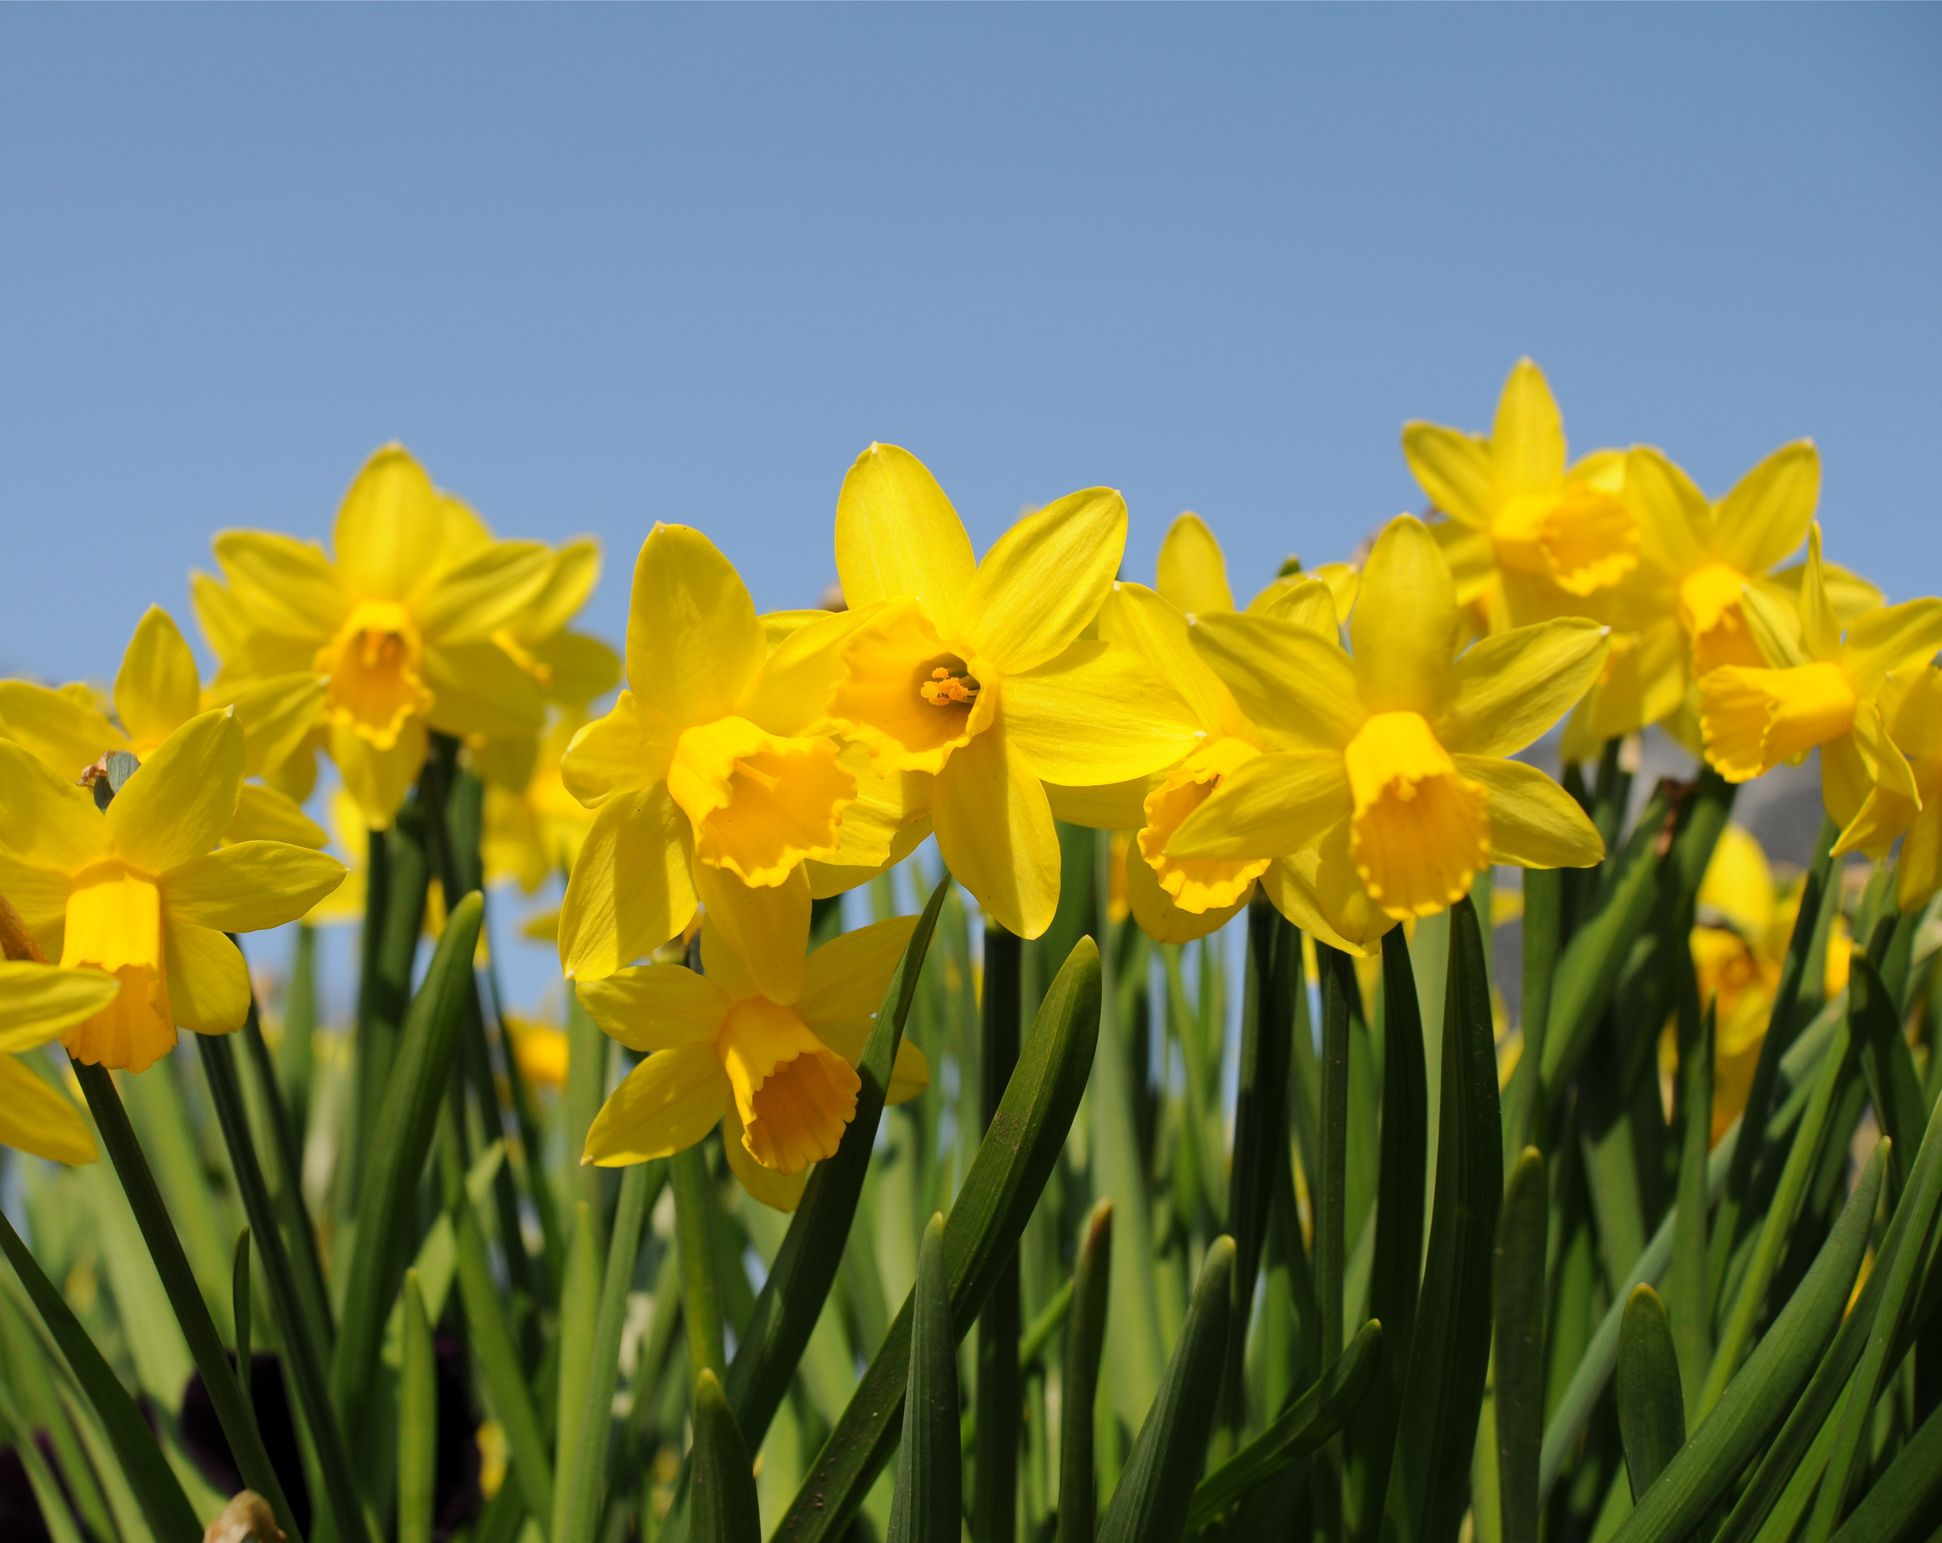 The UK's favourite spring flower has sprung up earlier because of the warm weather